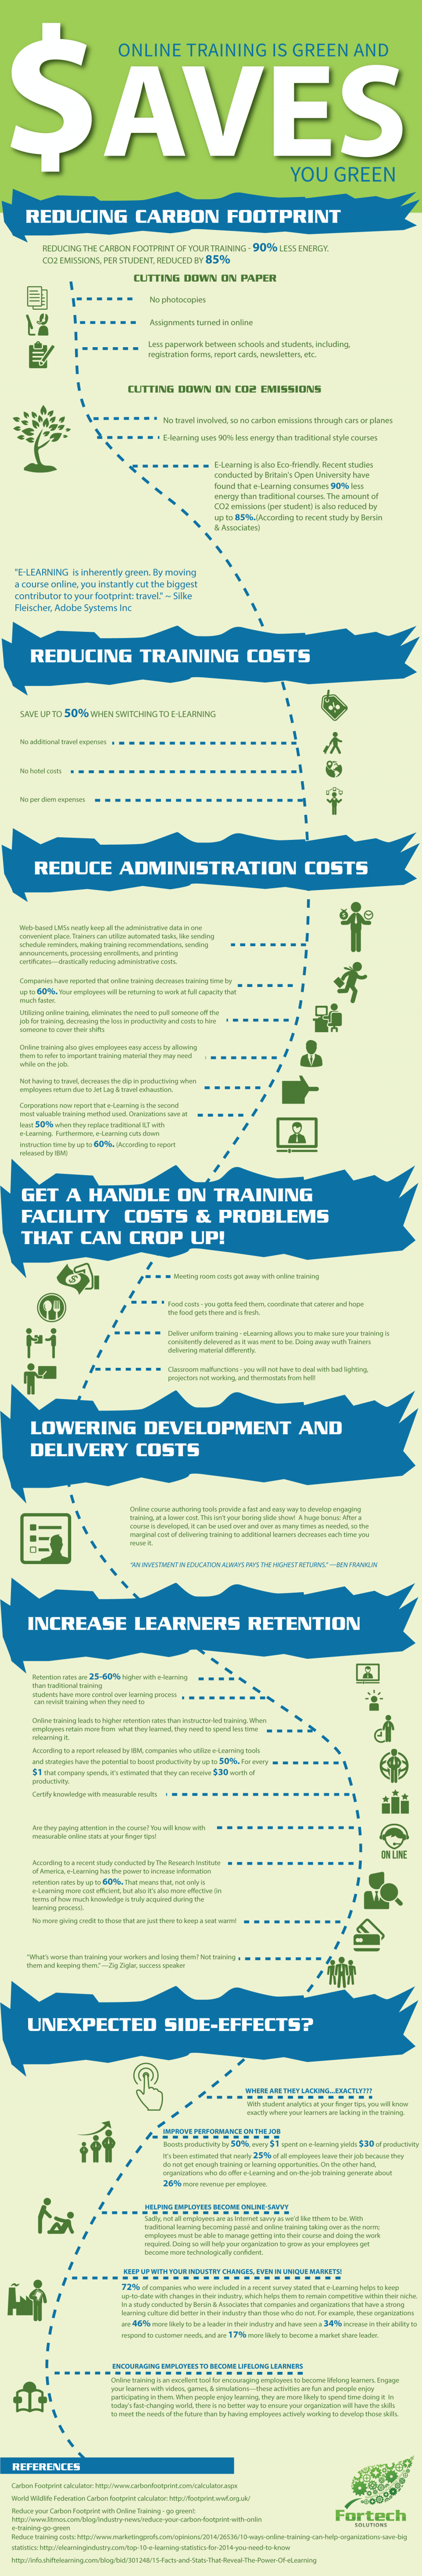 Online Training is Green Infographic